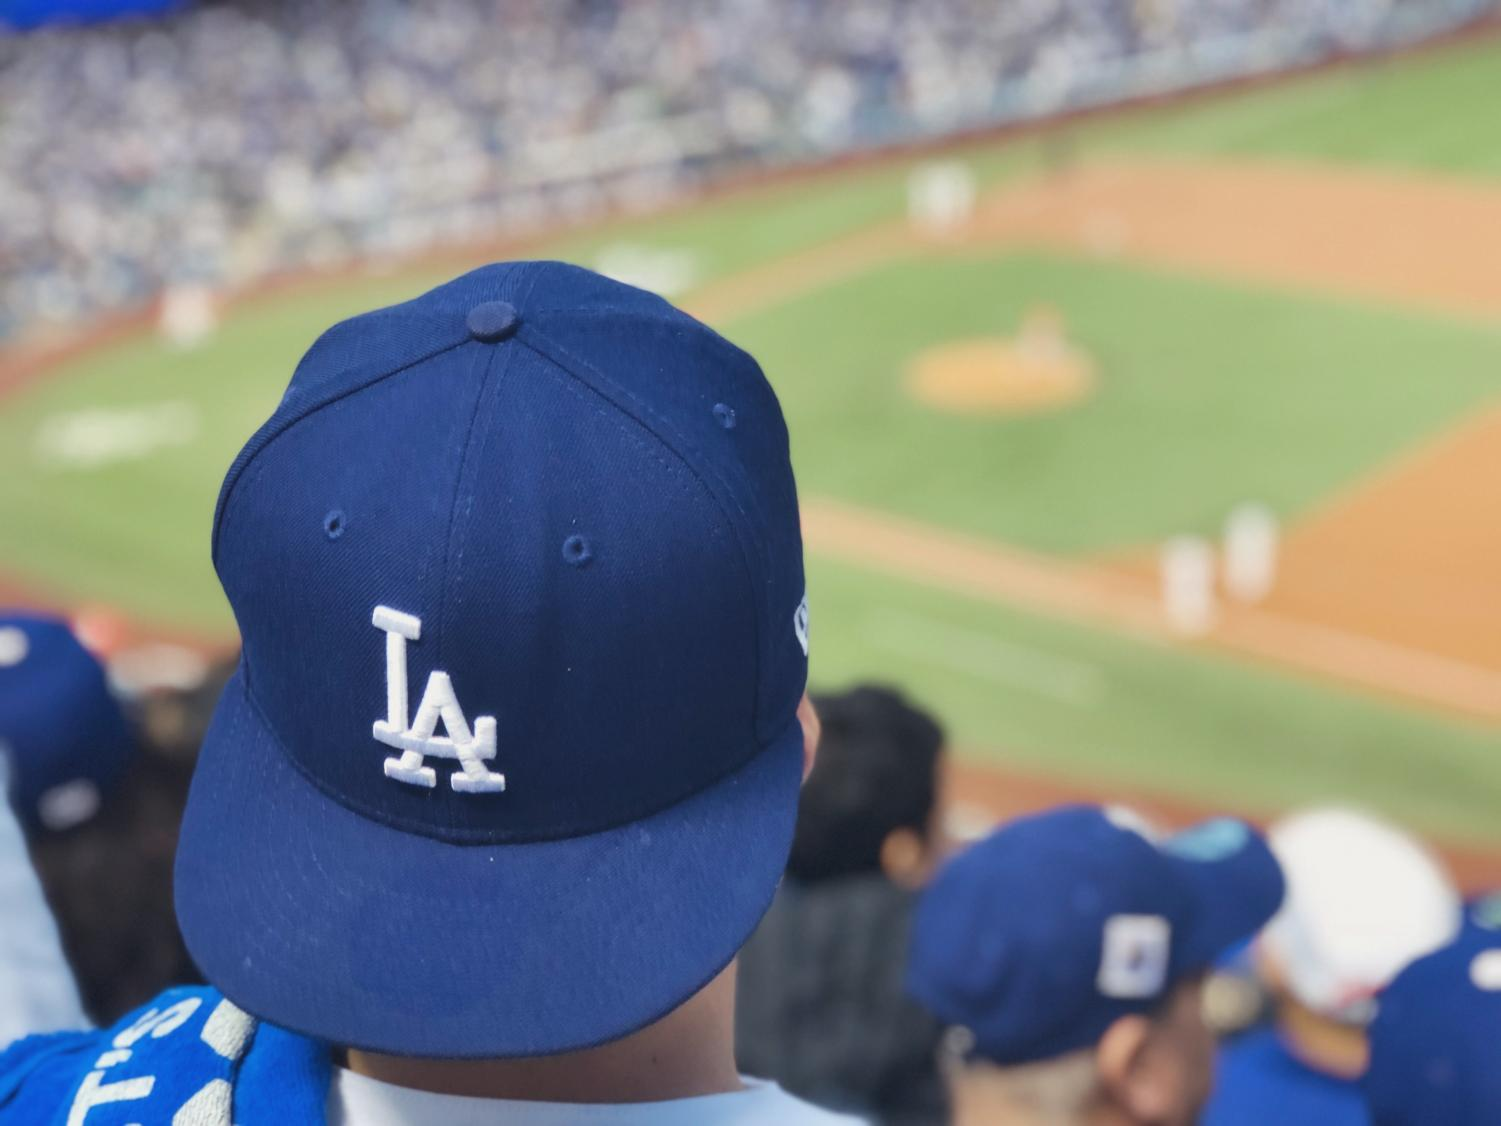 A fan shows his support for the Los Angeles Dodgers.